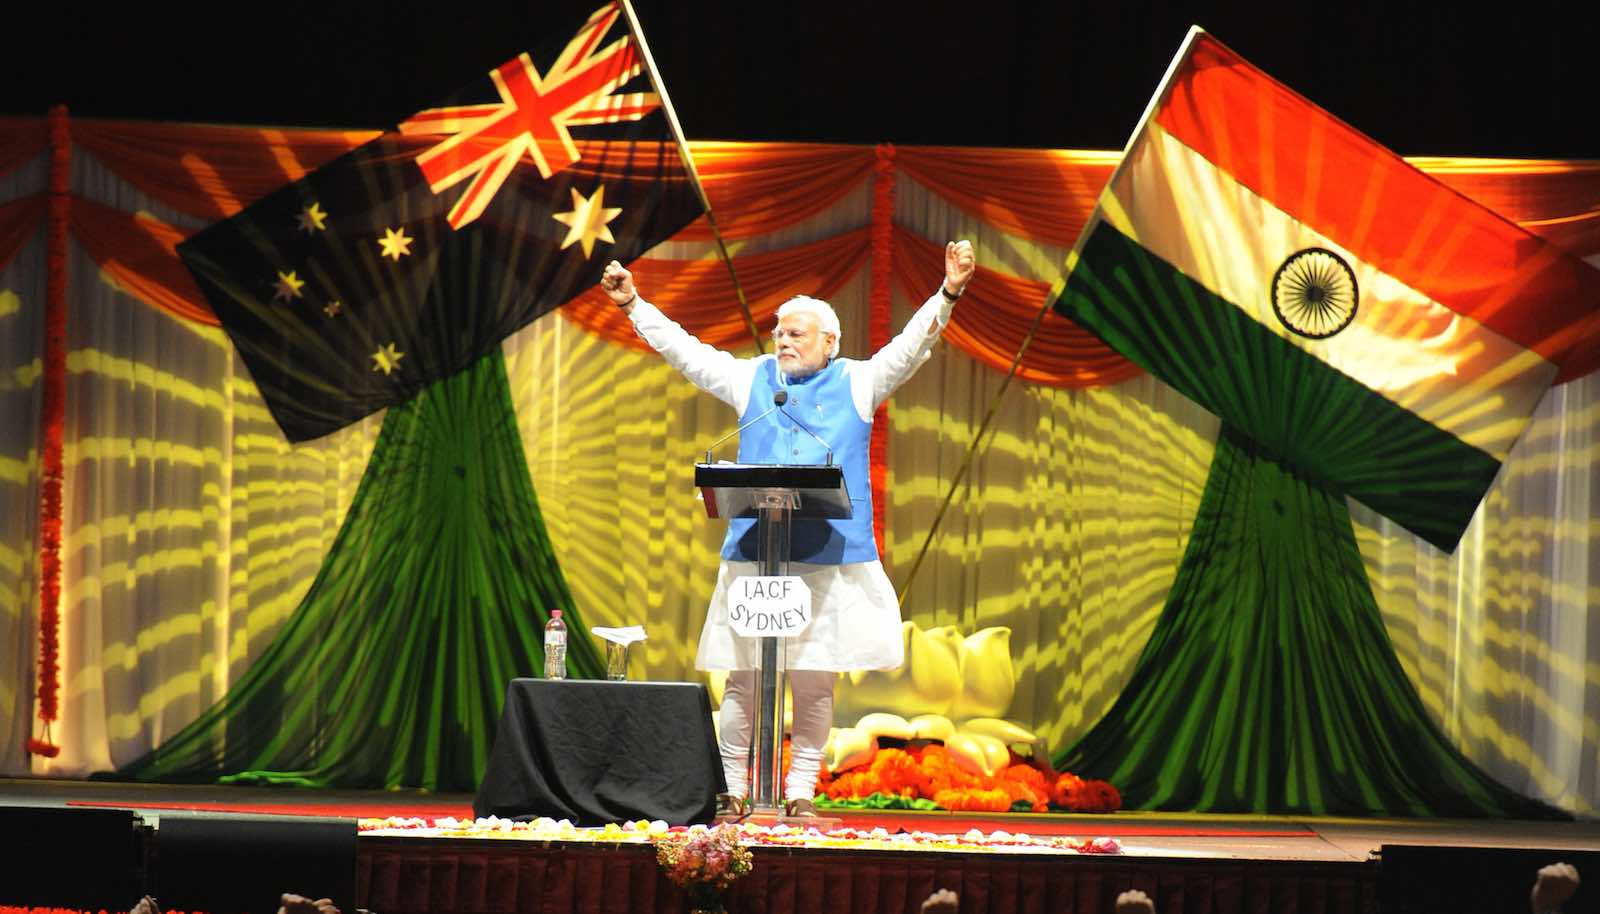 Indian Prime Minister Narendra Modi at Allphones Arena in Sydney, November 2014, when Australia hosted the G20 summit (Photo: MEAphotogallery/Flickr)